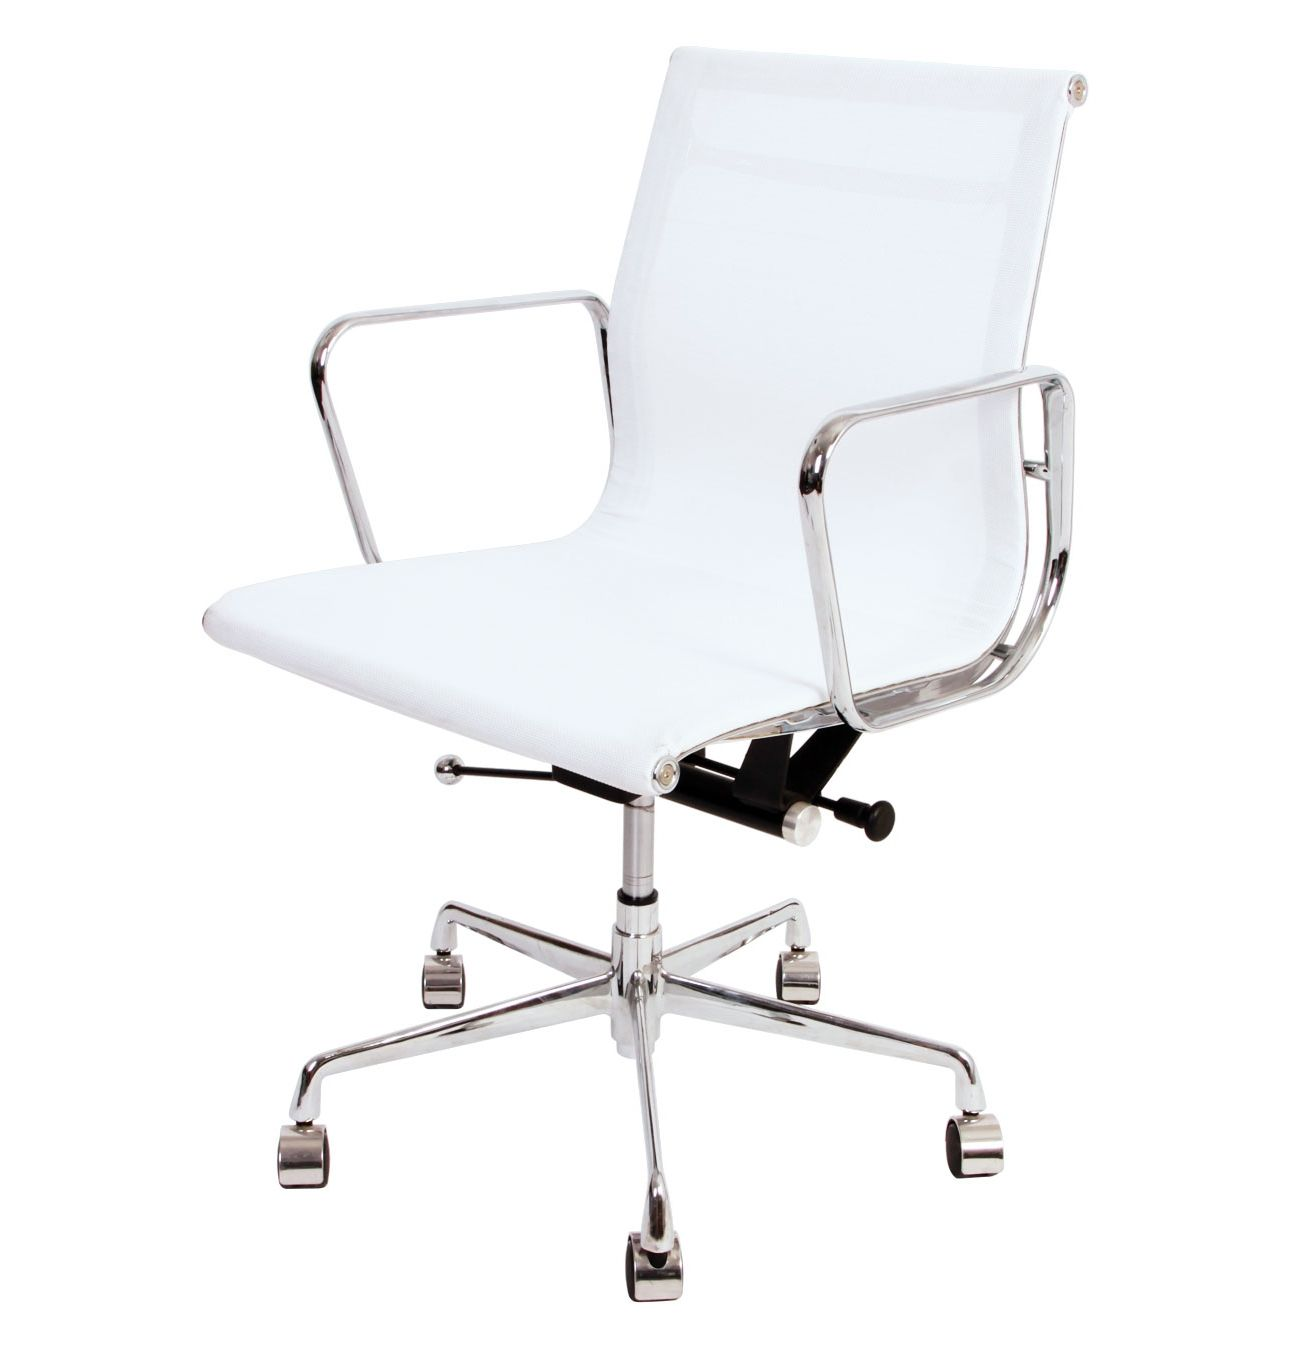 replica eames group standard aluminium chair cf. The Matt Blatt Replica Eames Group Aluminium Chair #CF-139 - Standard By Charles And Ray | Home Pinterest Cf M